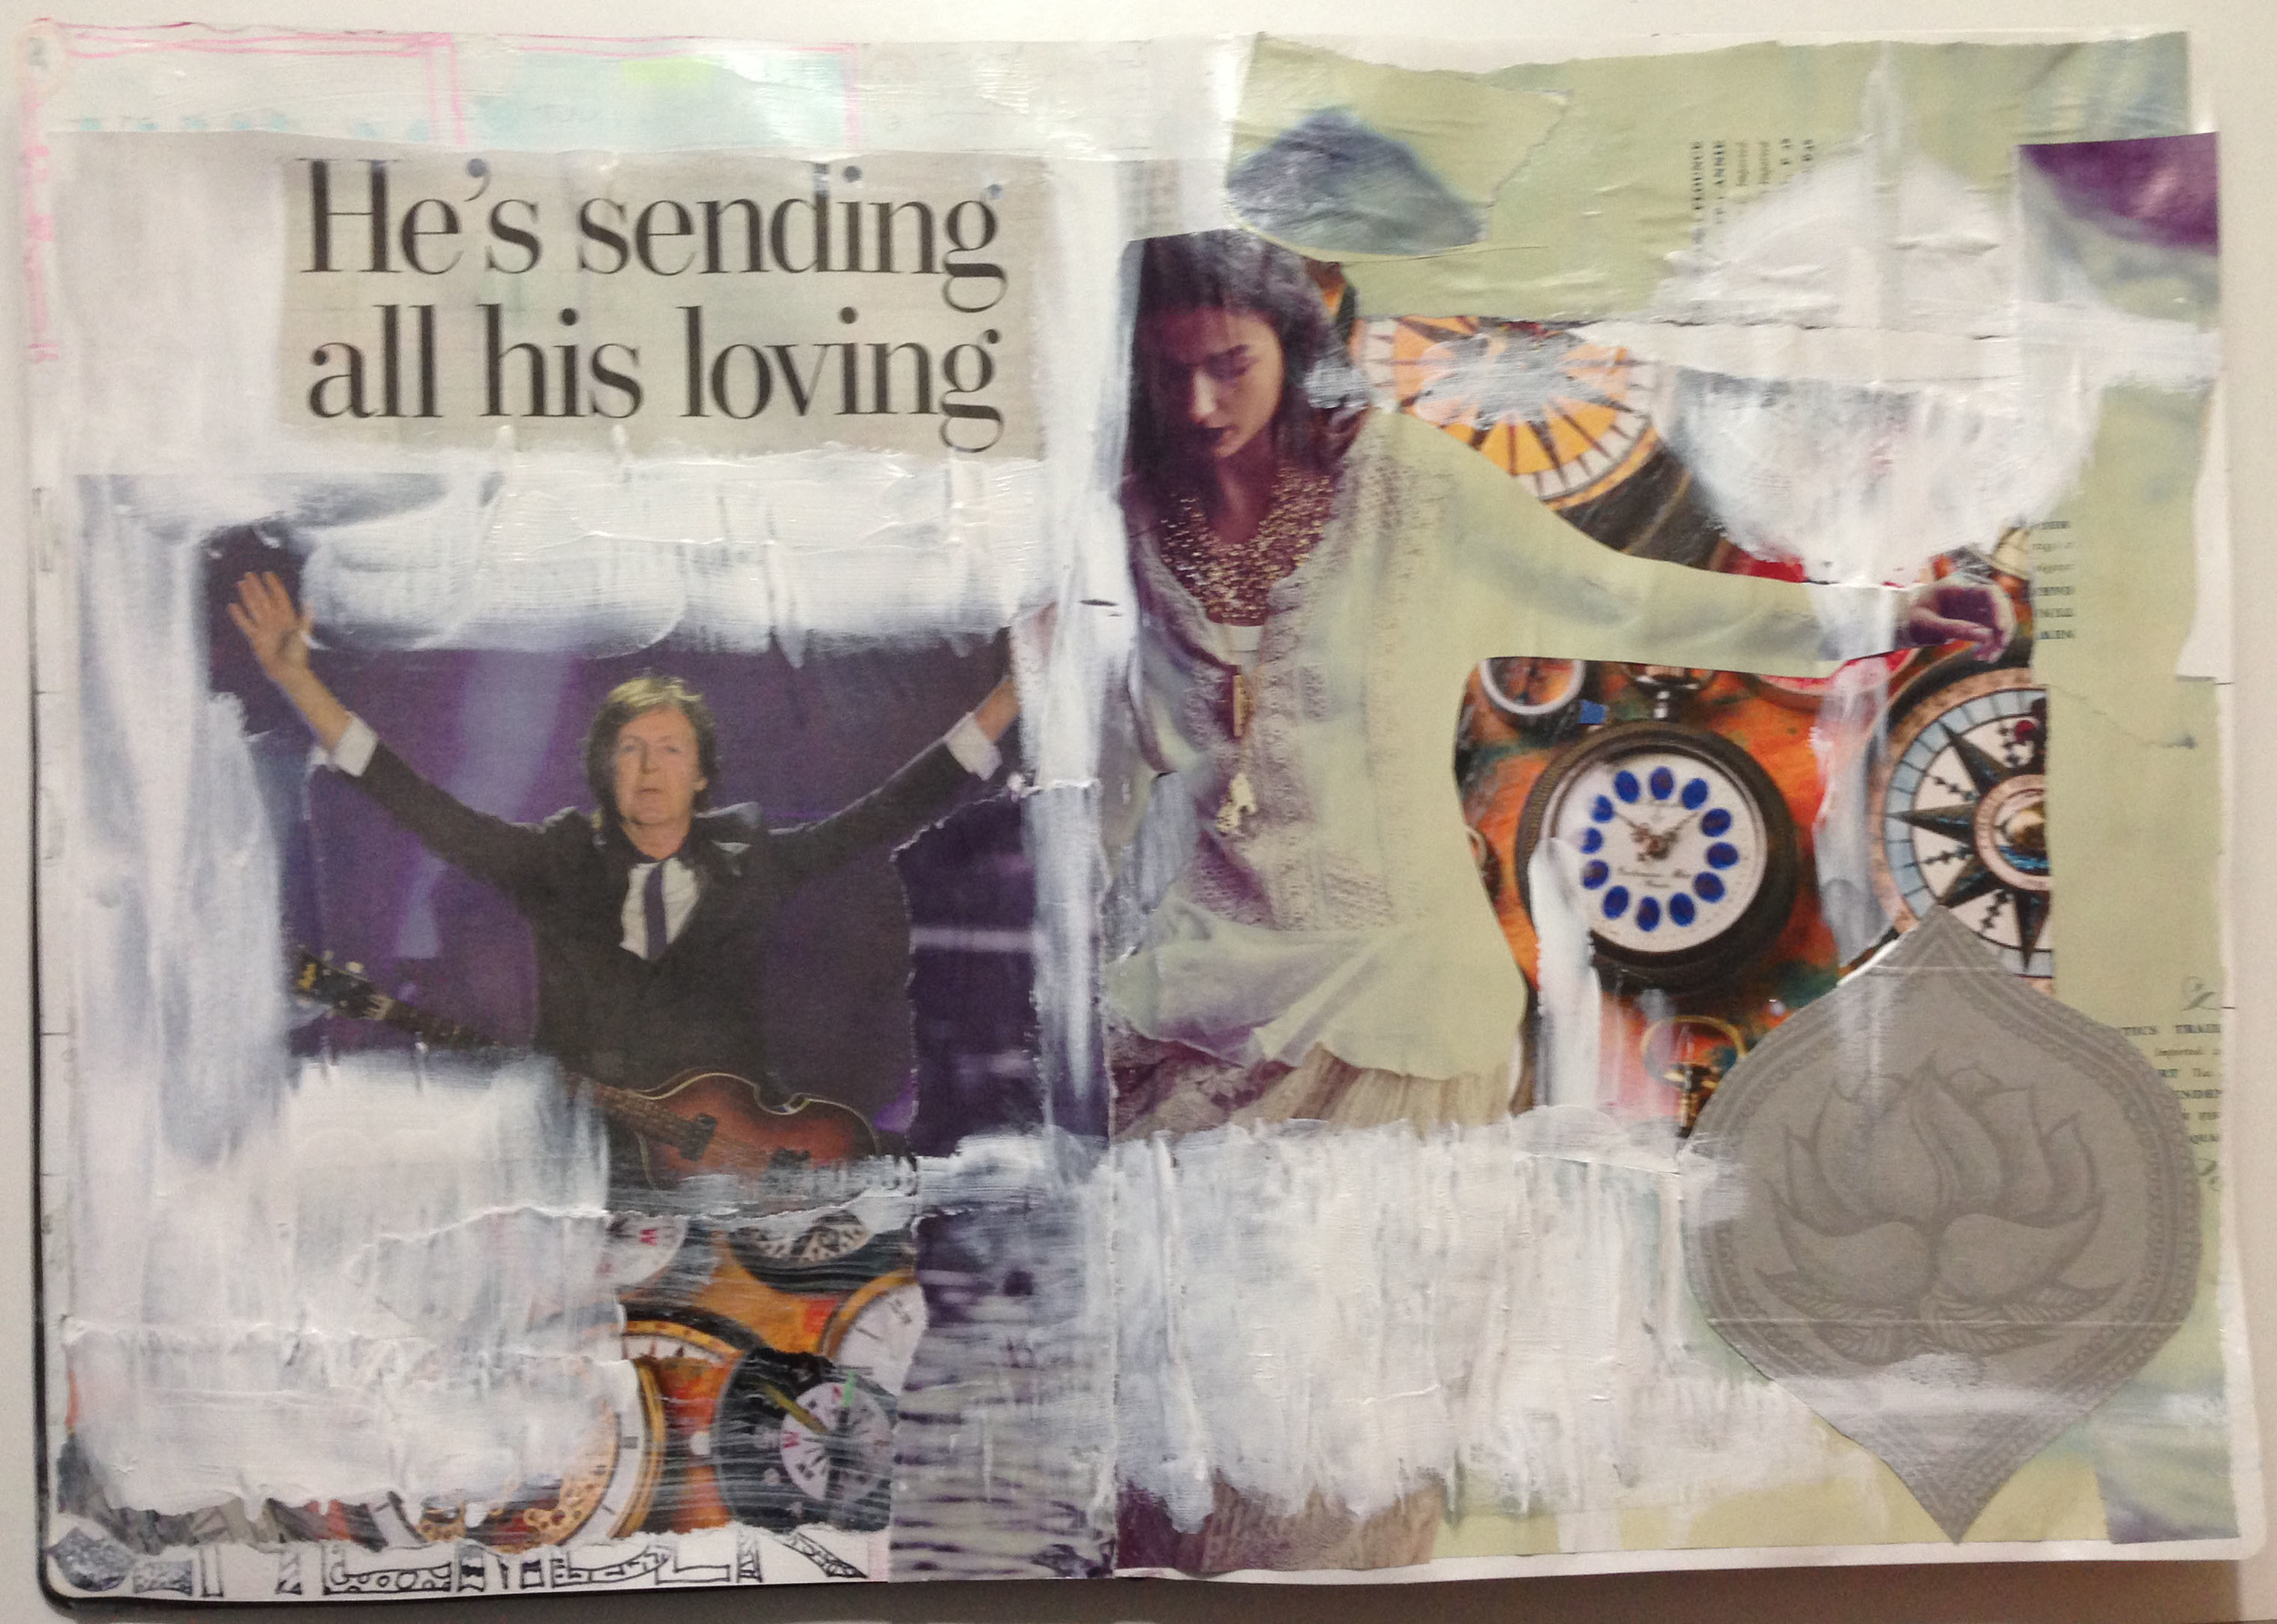 I collect images from magazines constantly. But when I saw this headline about Paul McCartney performing for 3 hours at the age of 71, I had a reaction. The lotus bloom on the bottom right is actually the inside of a Yogi Tea box...who knew!